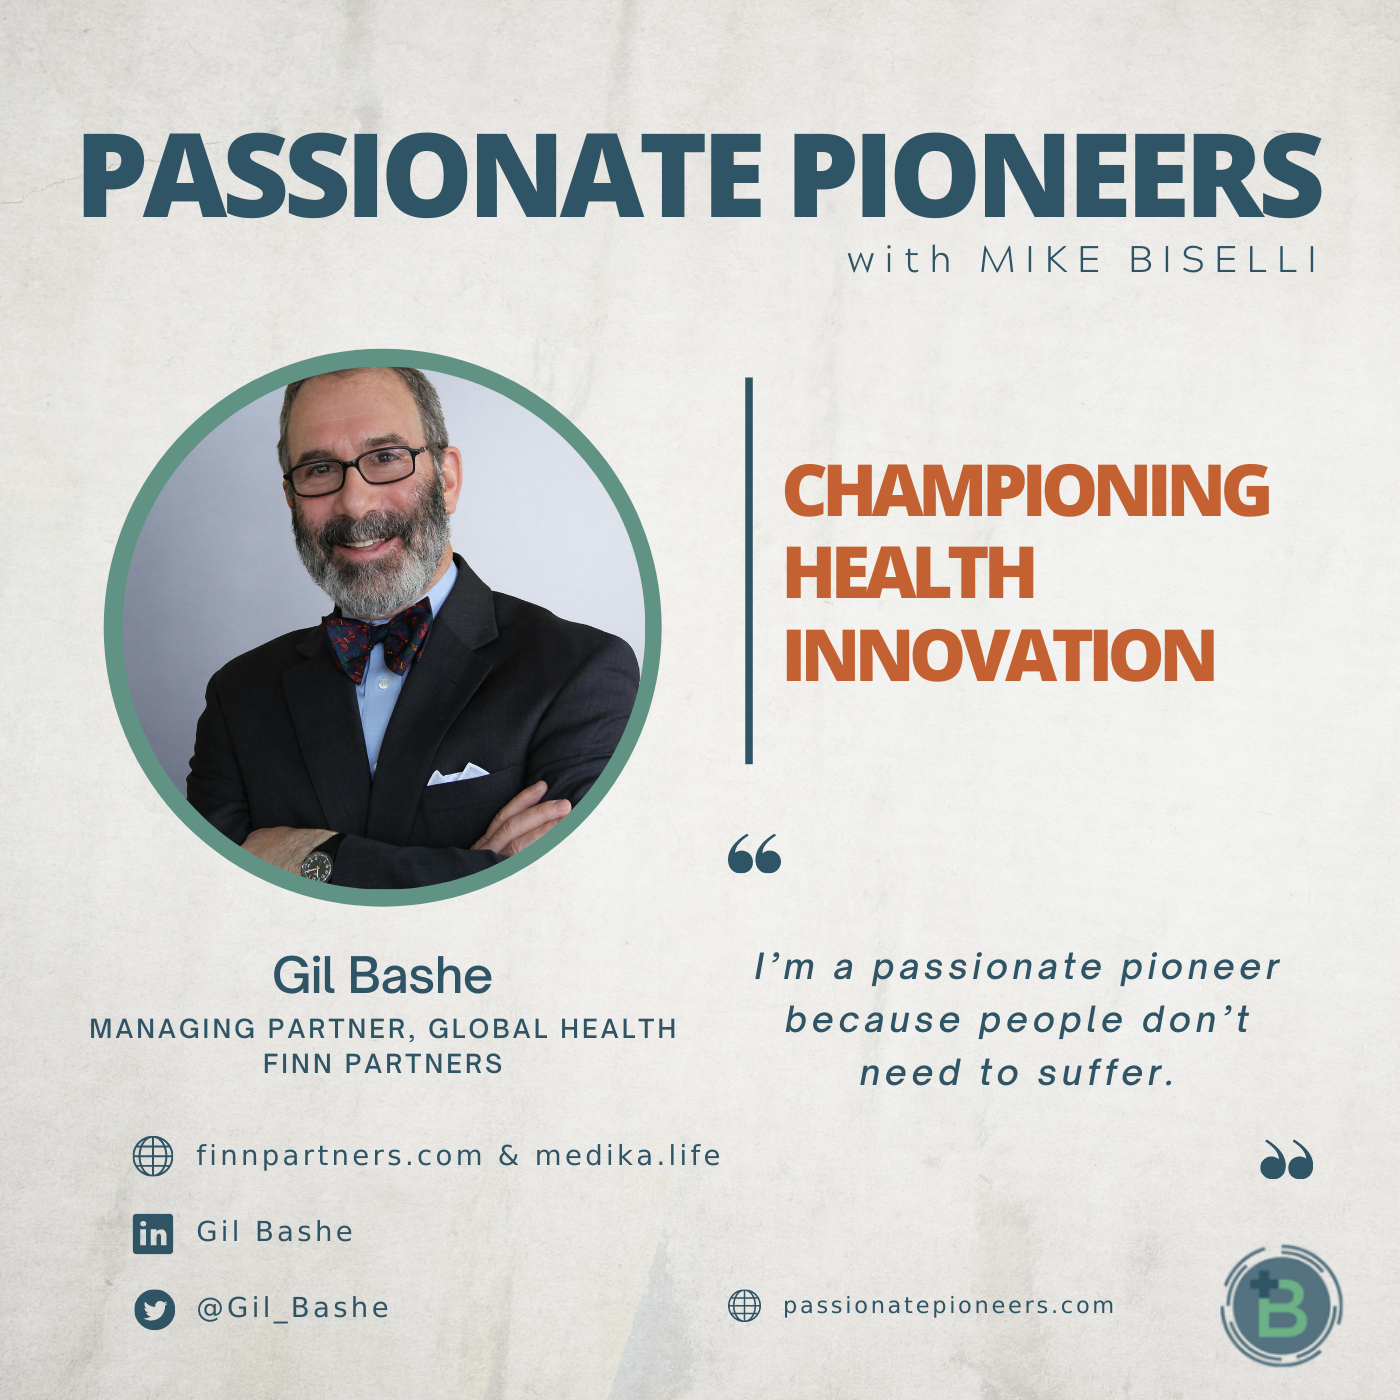 Championing Health Innovation with Gil Bashe